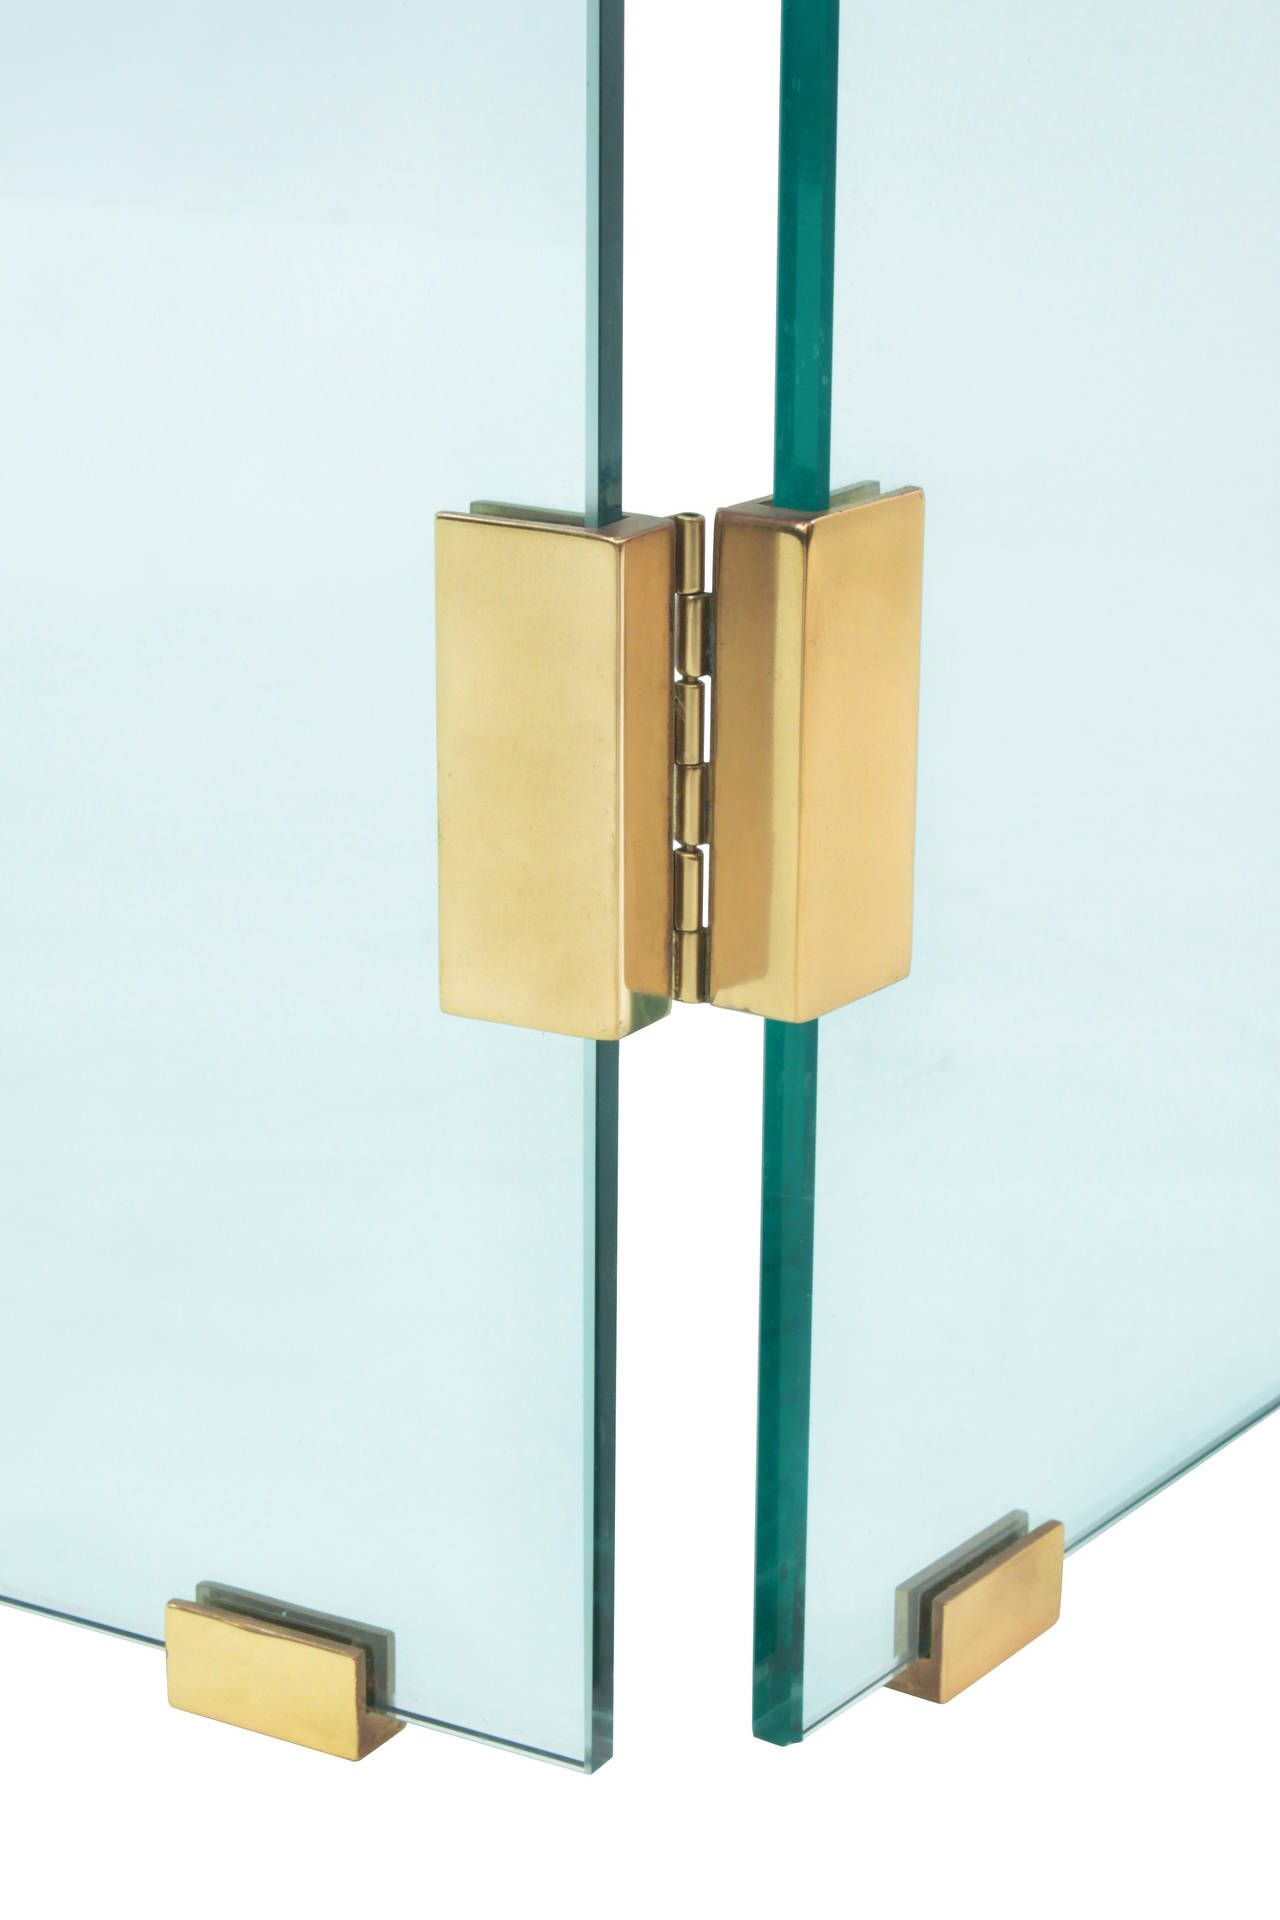 Glass Fireplace Screen With Brass Hinges By Danny